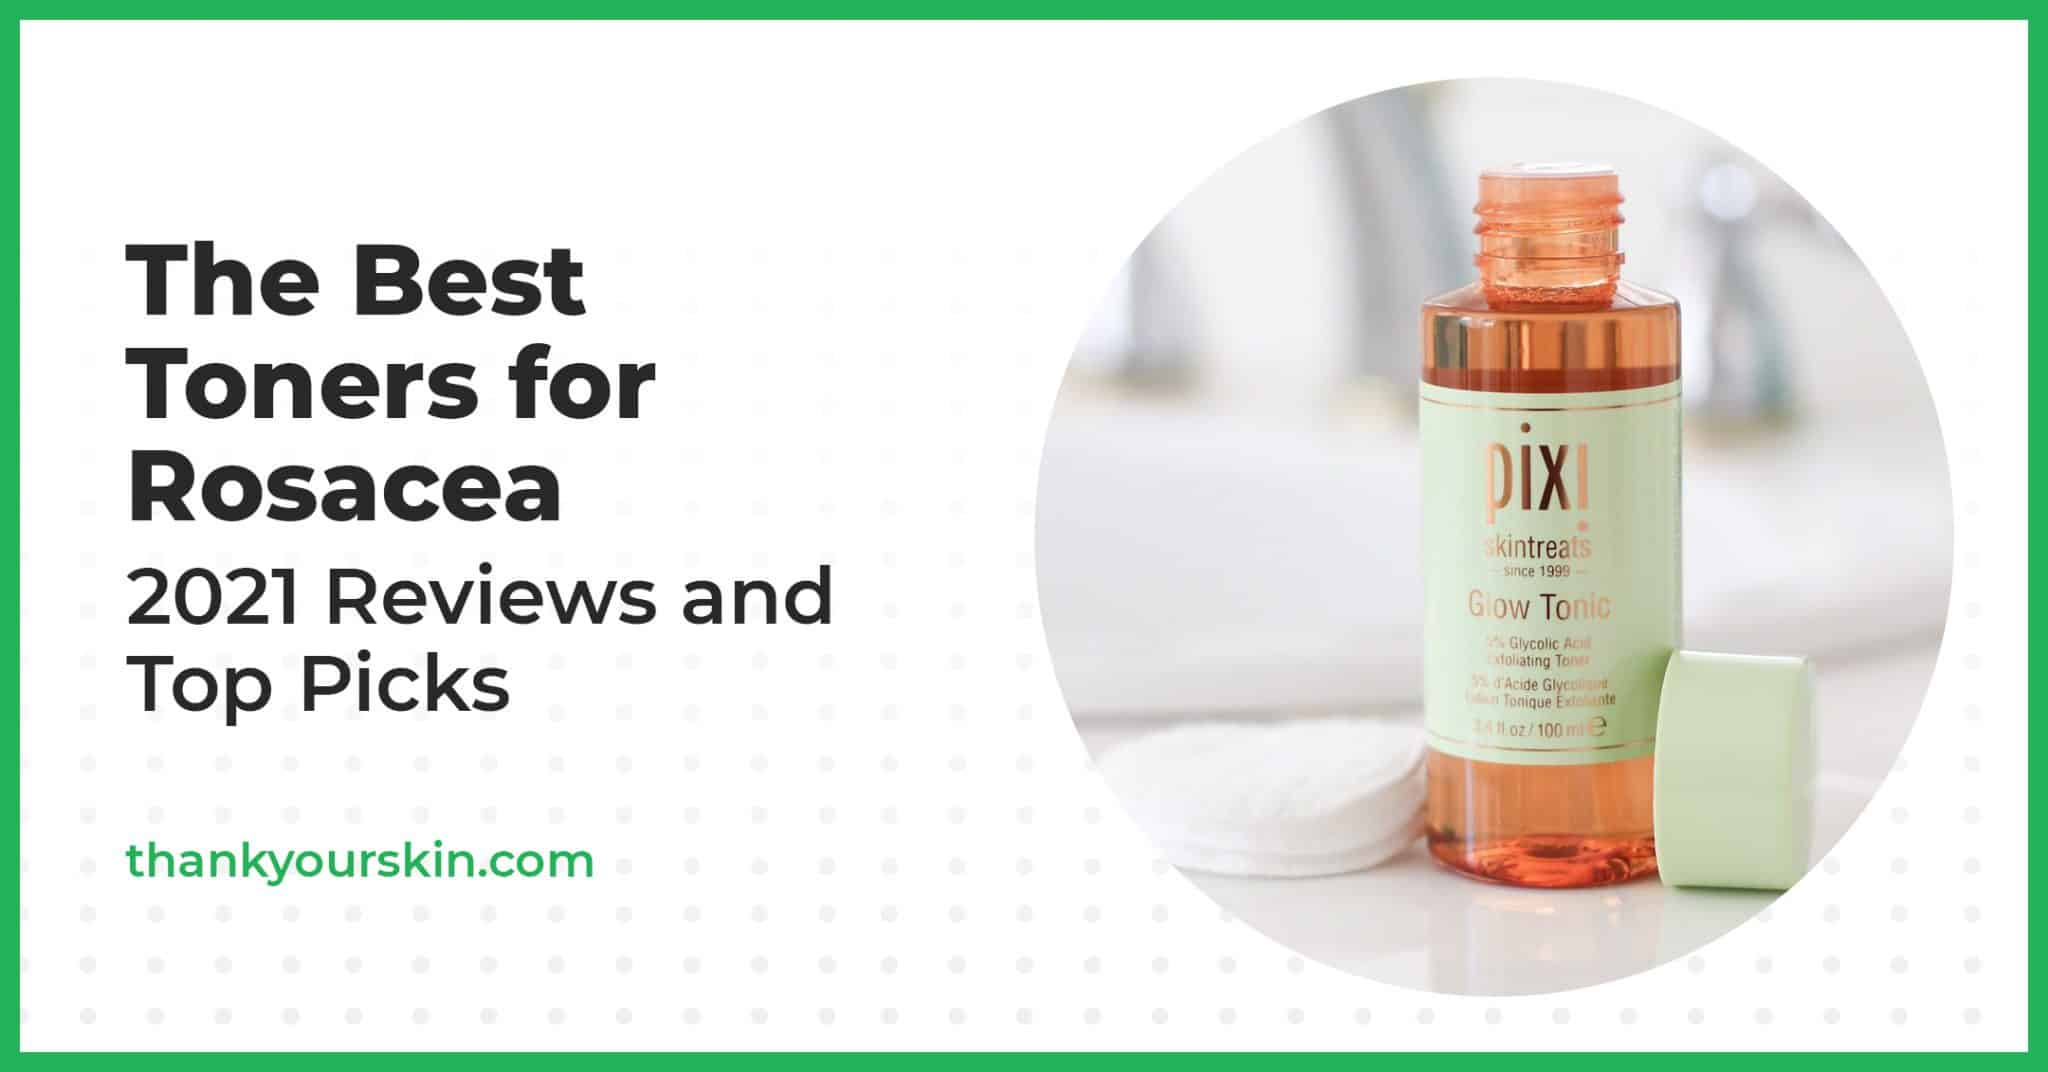 The Best Toners for Rosacea – 2021 Reviews and Top Picks